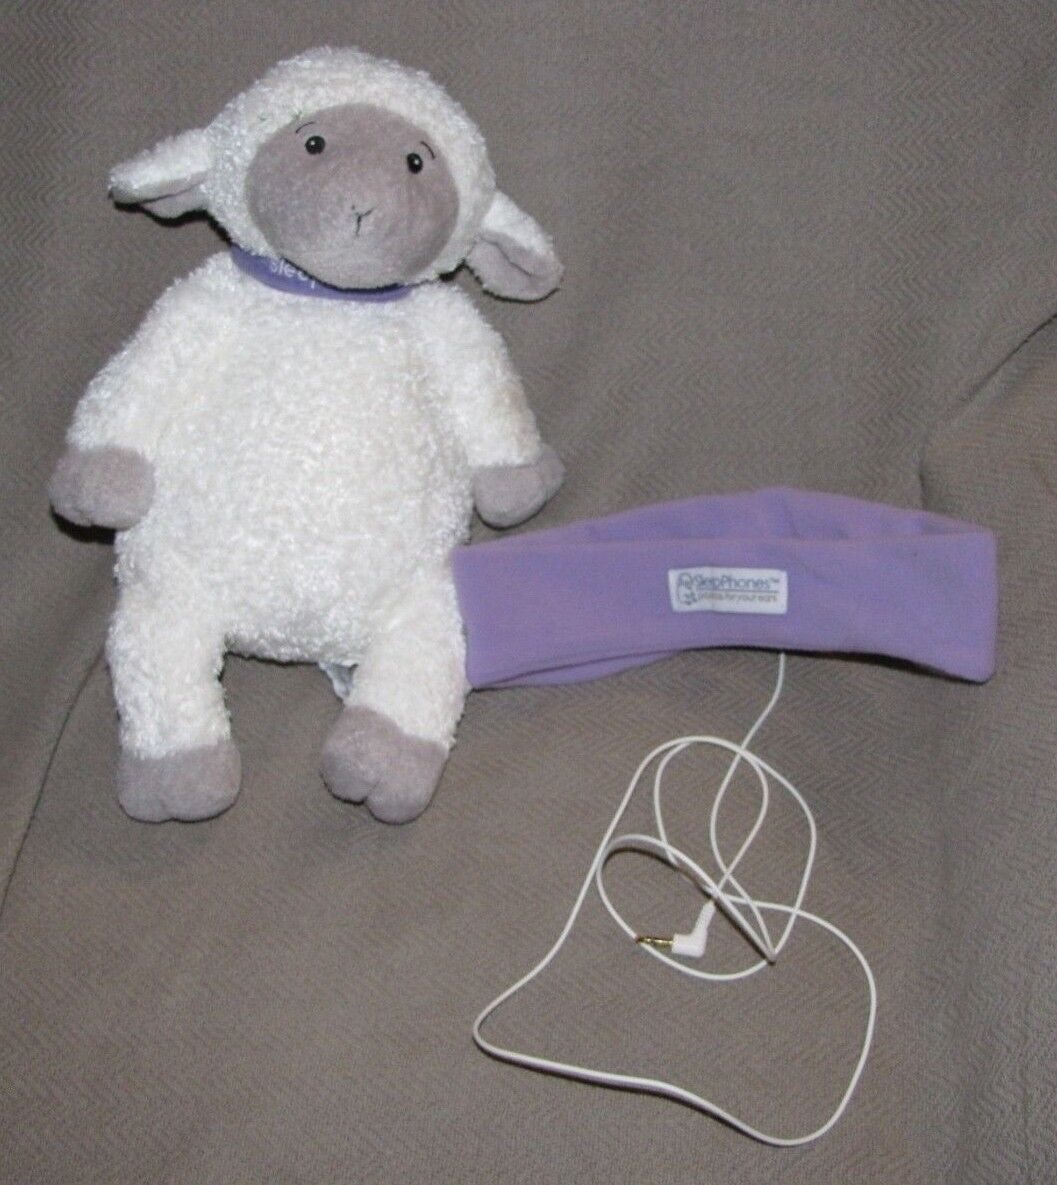 SLEEPPHONES SLEEP PHONES EAR LAVENDER lila FLEECE LAMB SHEEP STUFFED PLUSH